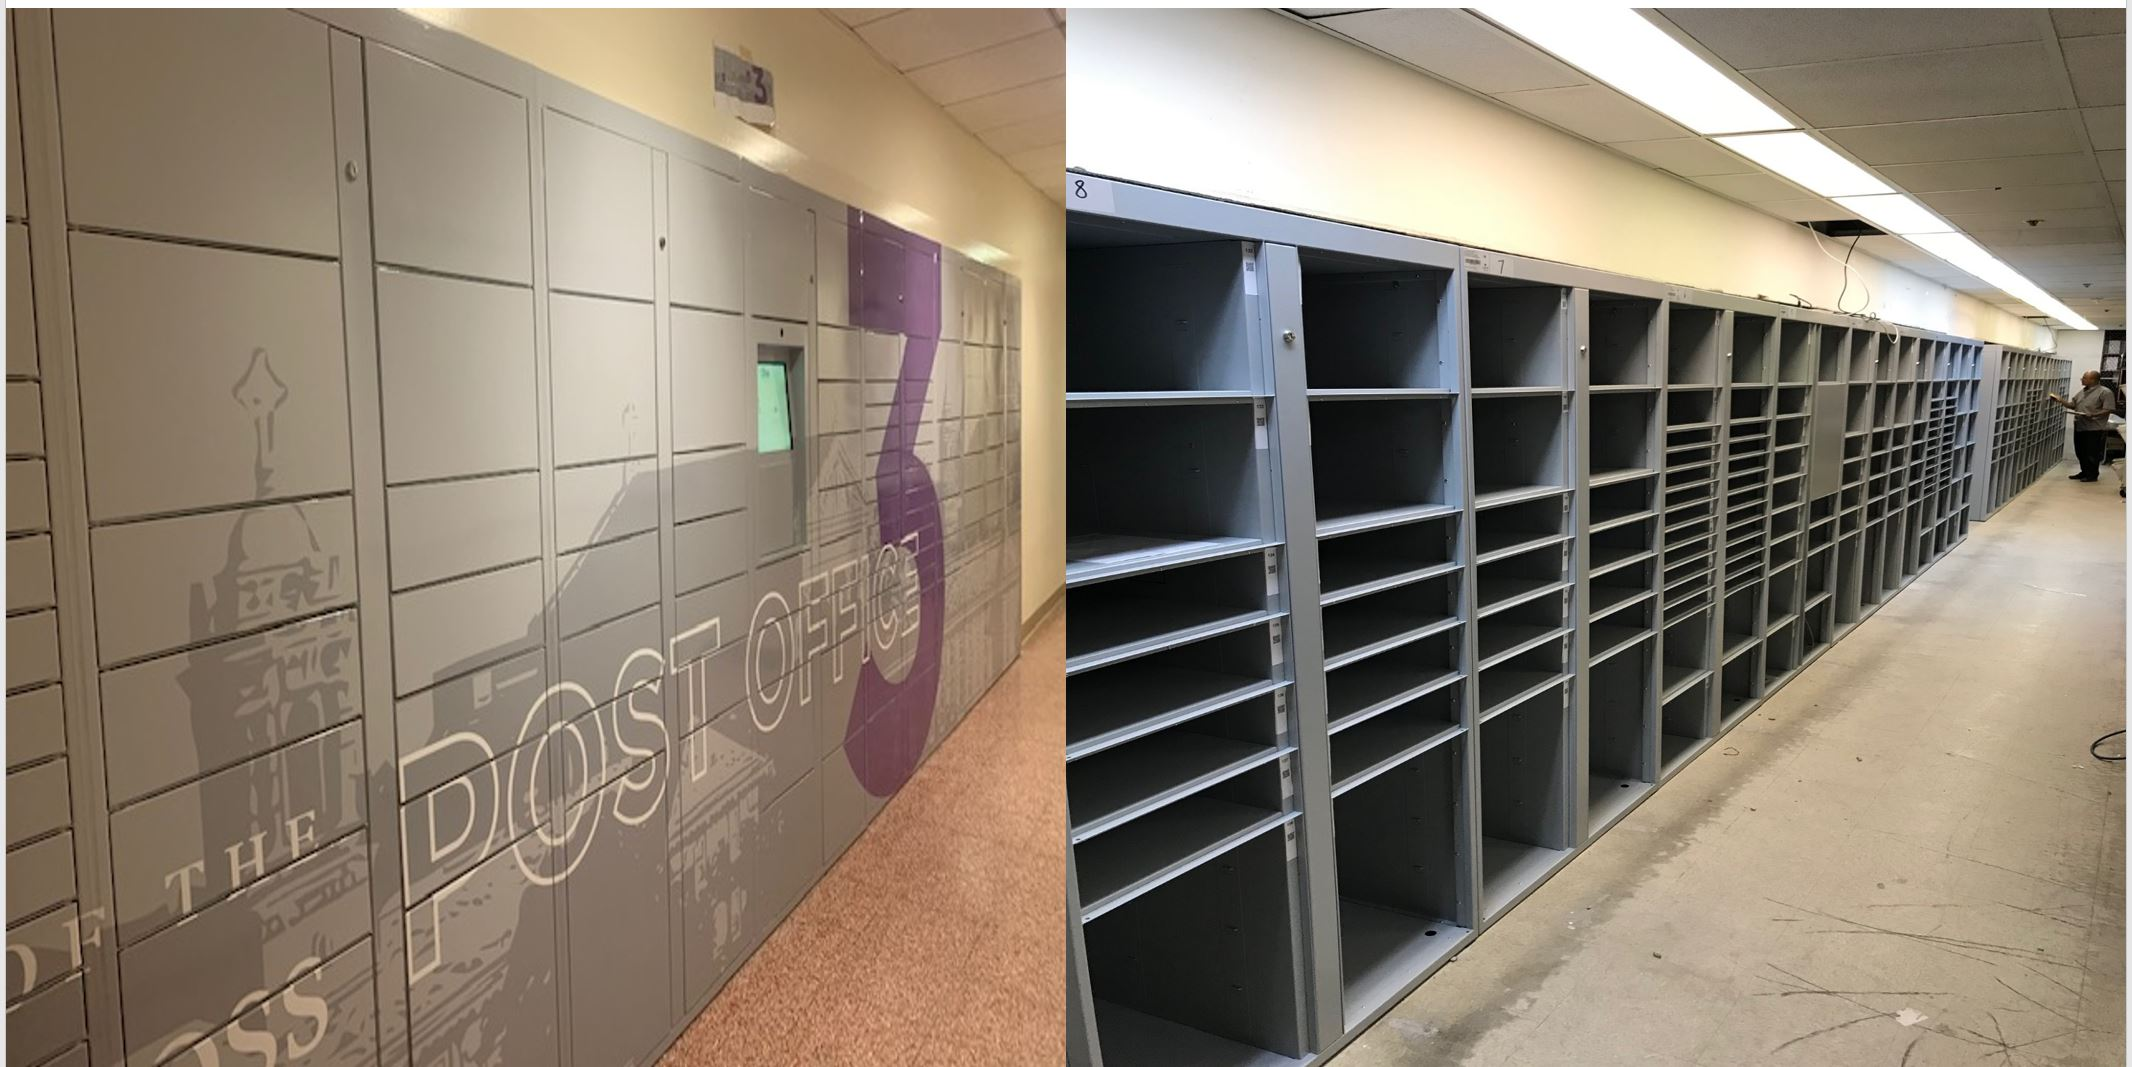 Package locker design options